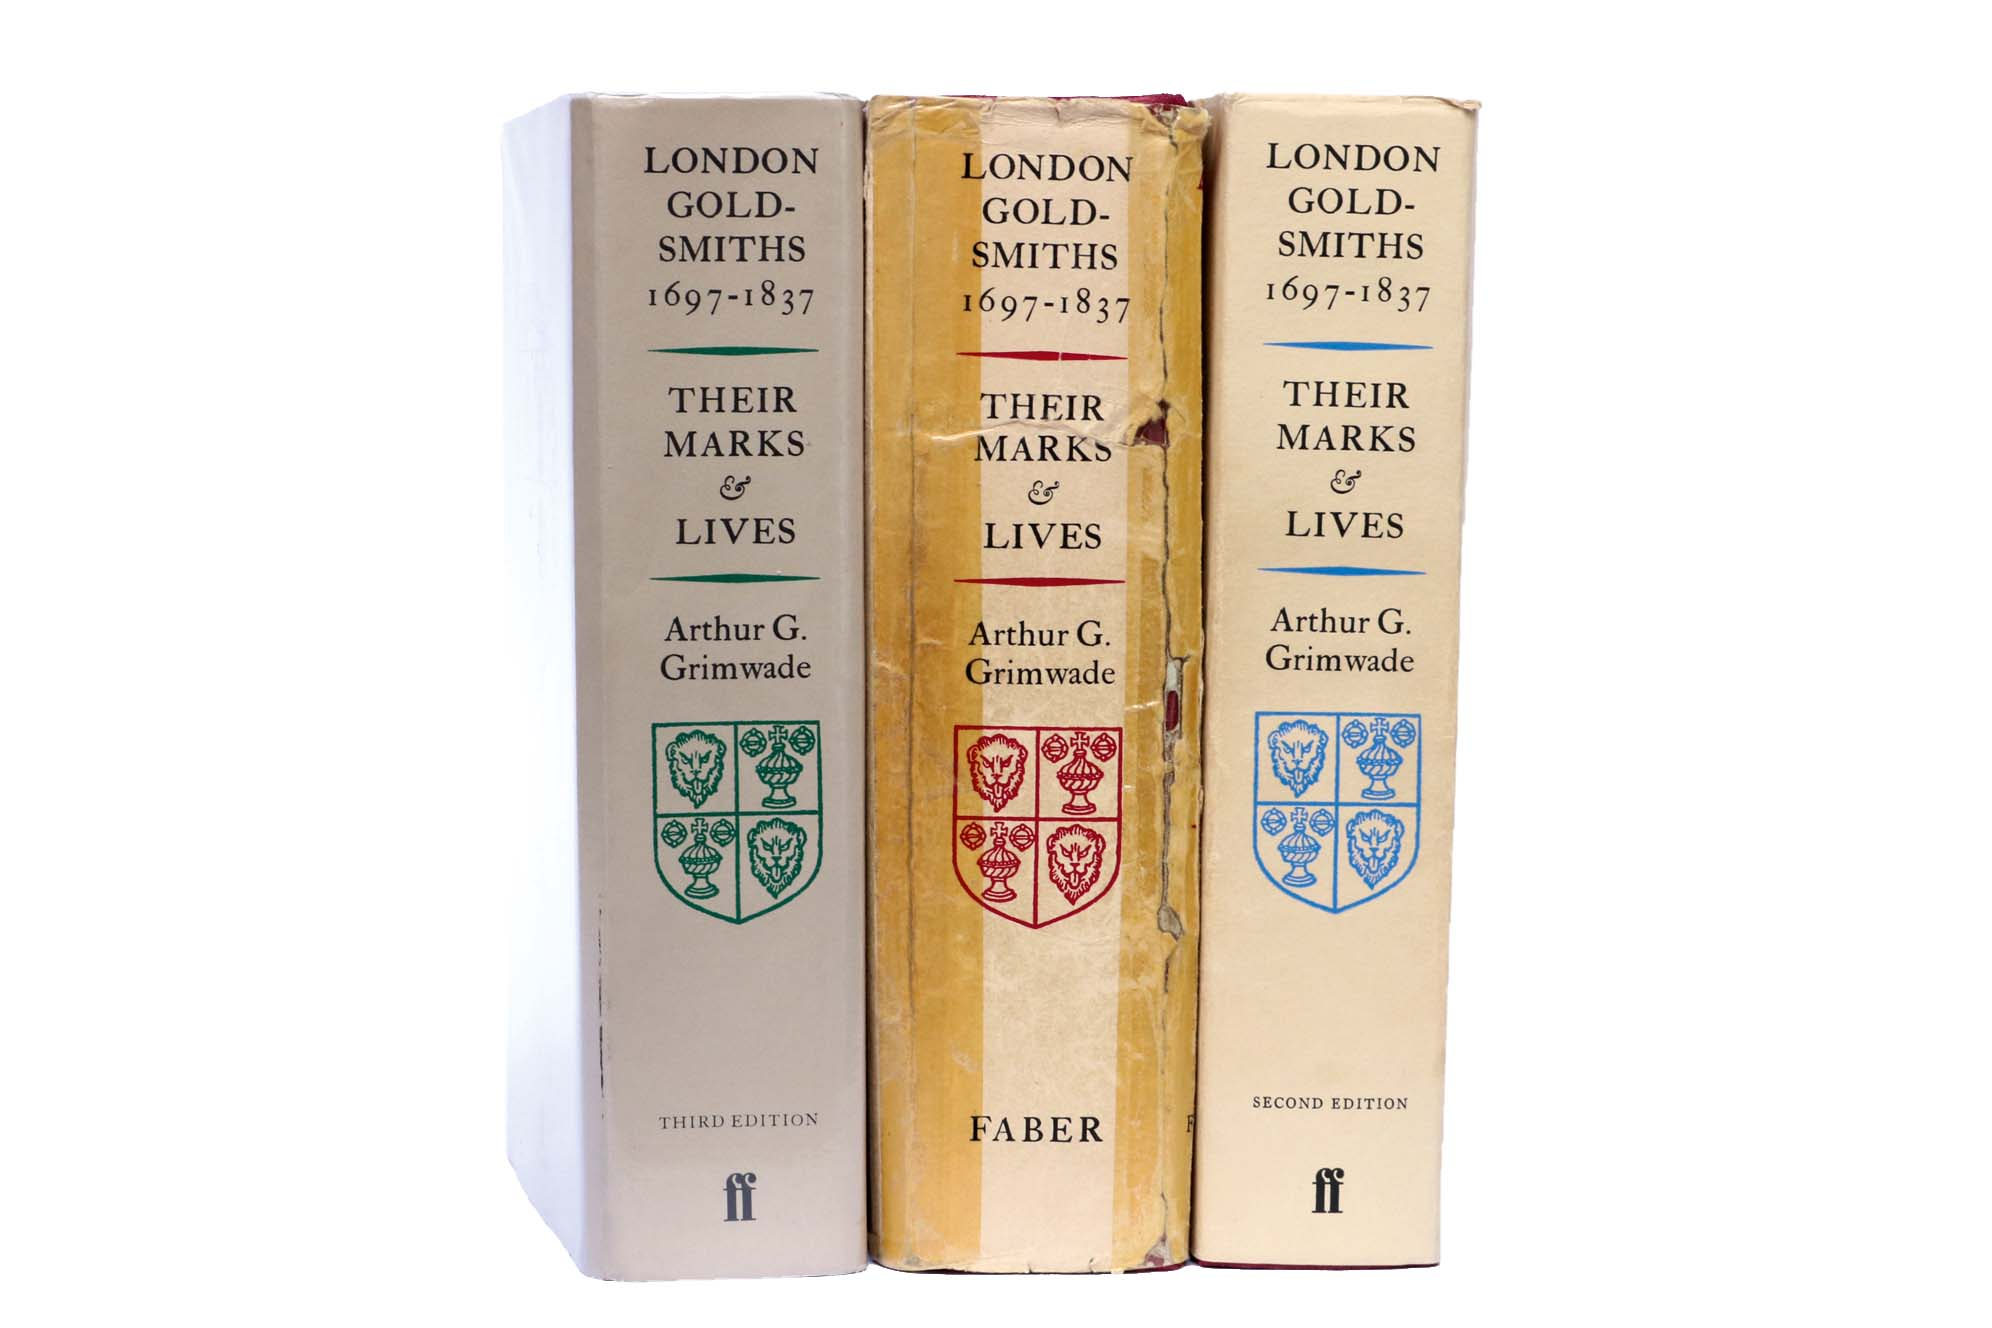 Lot 24 - Grimwade, A.G: London Goldsmiths 1697-1837, Faber & Faber 1976, 1982 and 1990 editions (3)